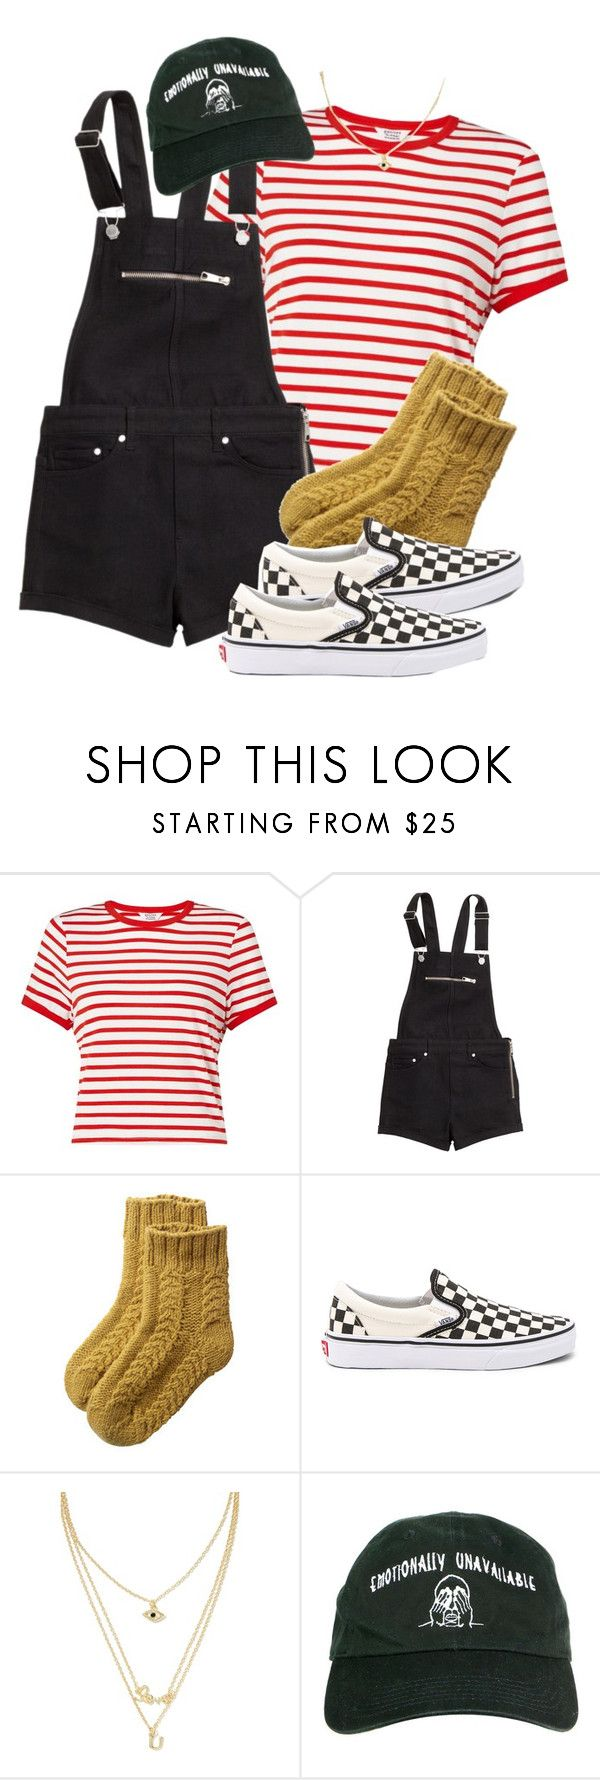 """""""Roy Woods - In The Club"""" by moidestiny ❤ liked on Polyvore featuring Miss Selfridge, H&M, Toast, Vans and Emotionally Unavailable"""